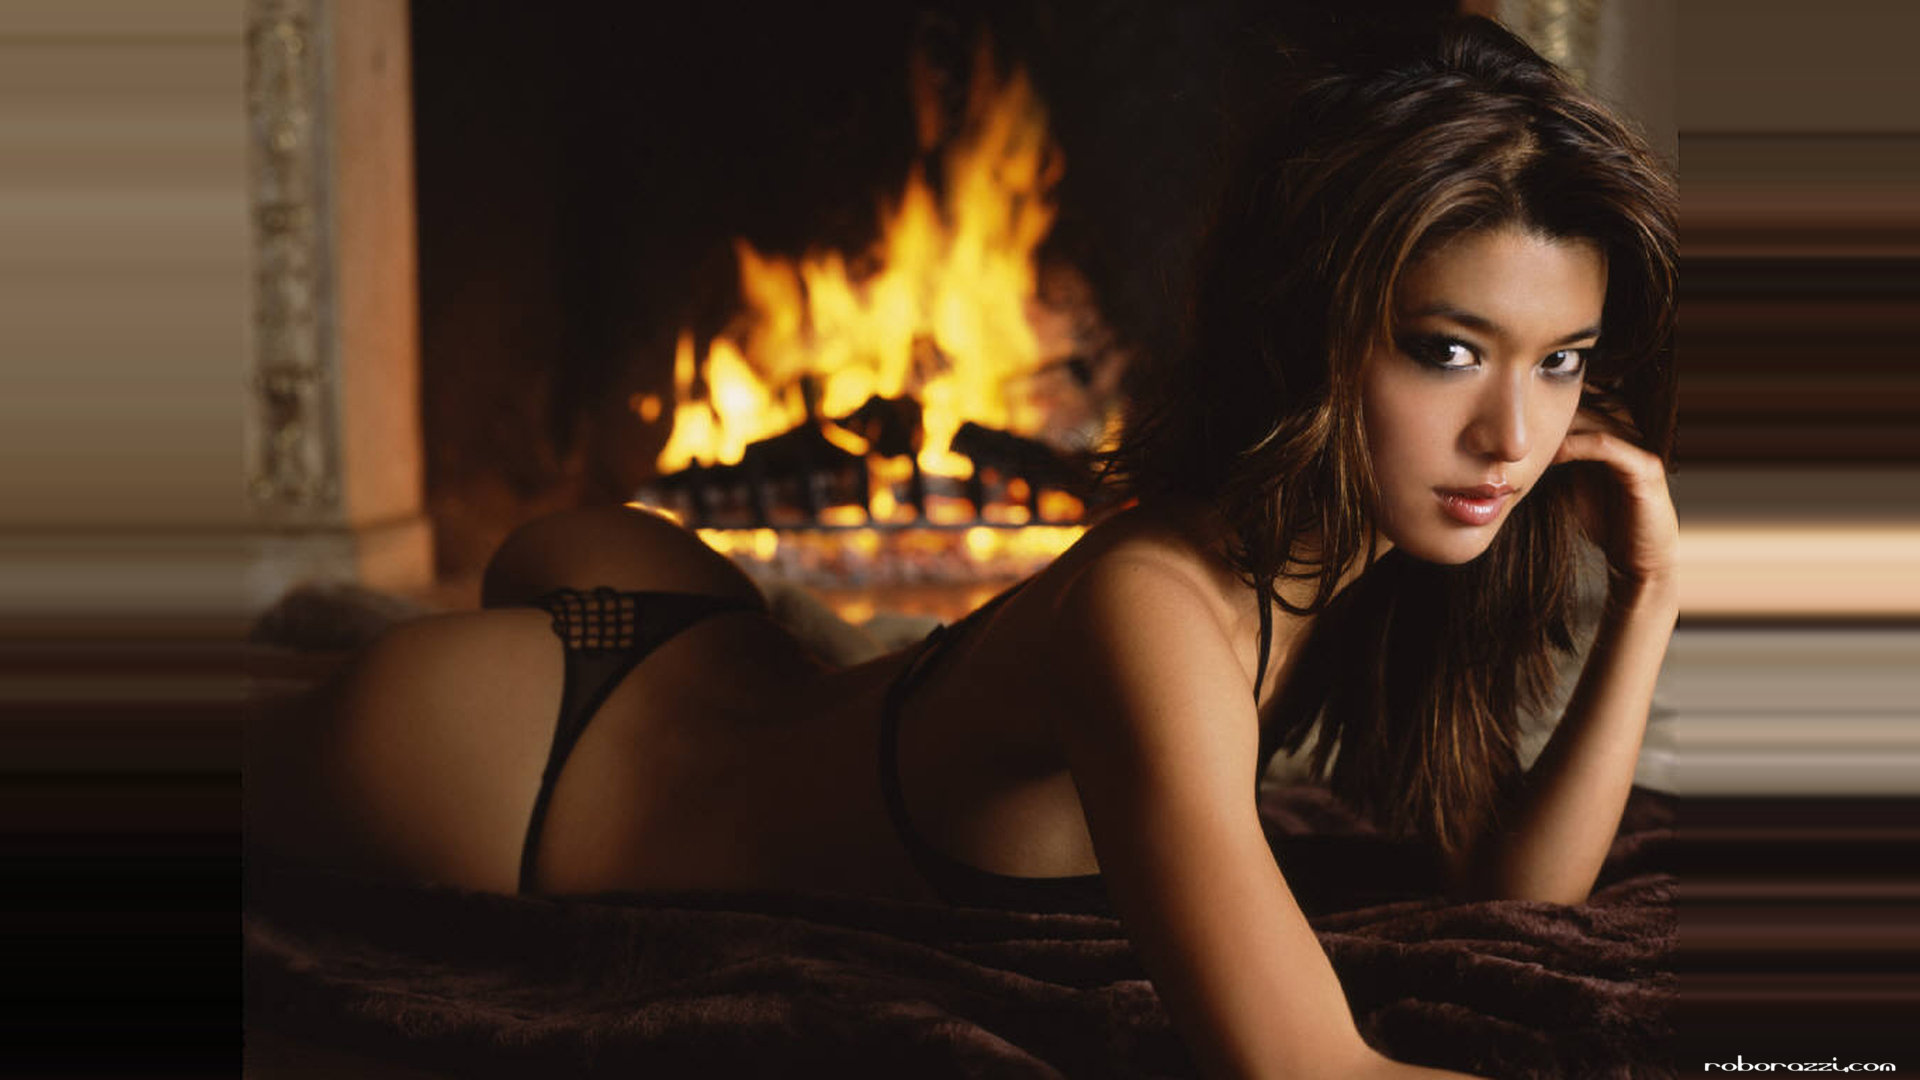 Grace Park in a thong in front of a fire